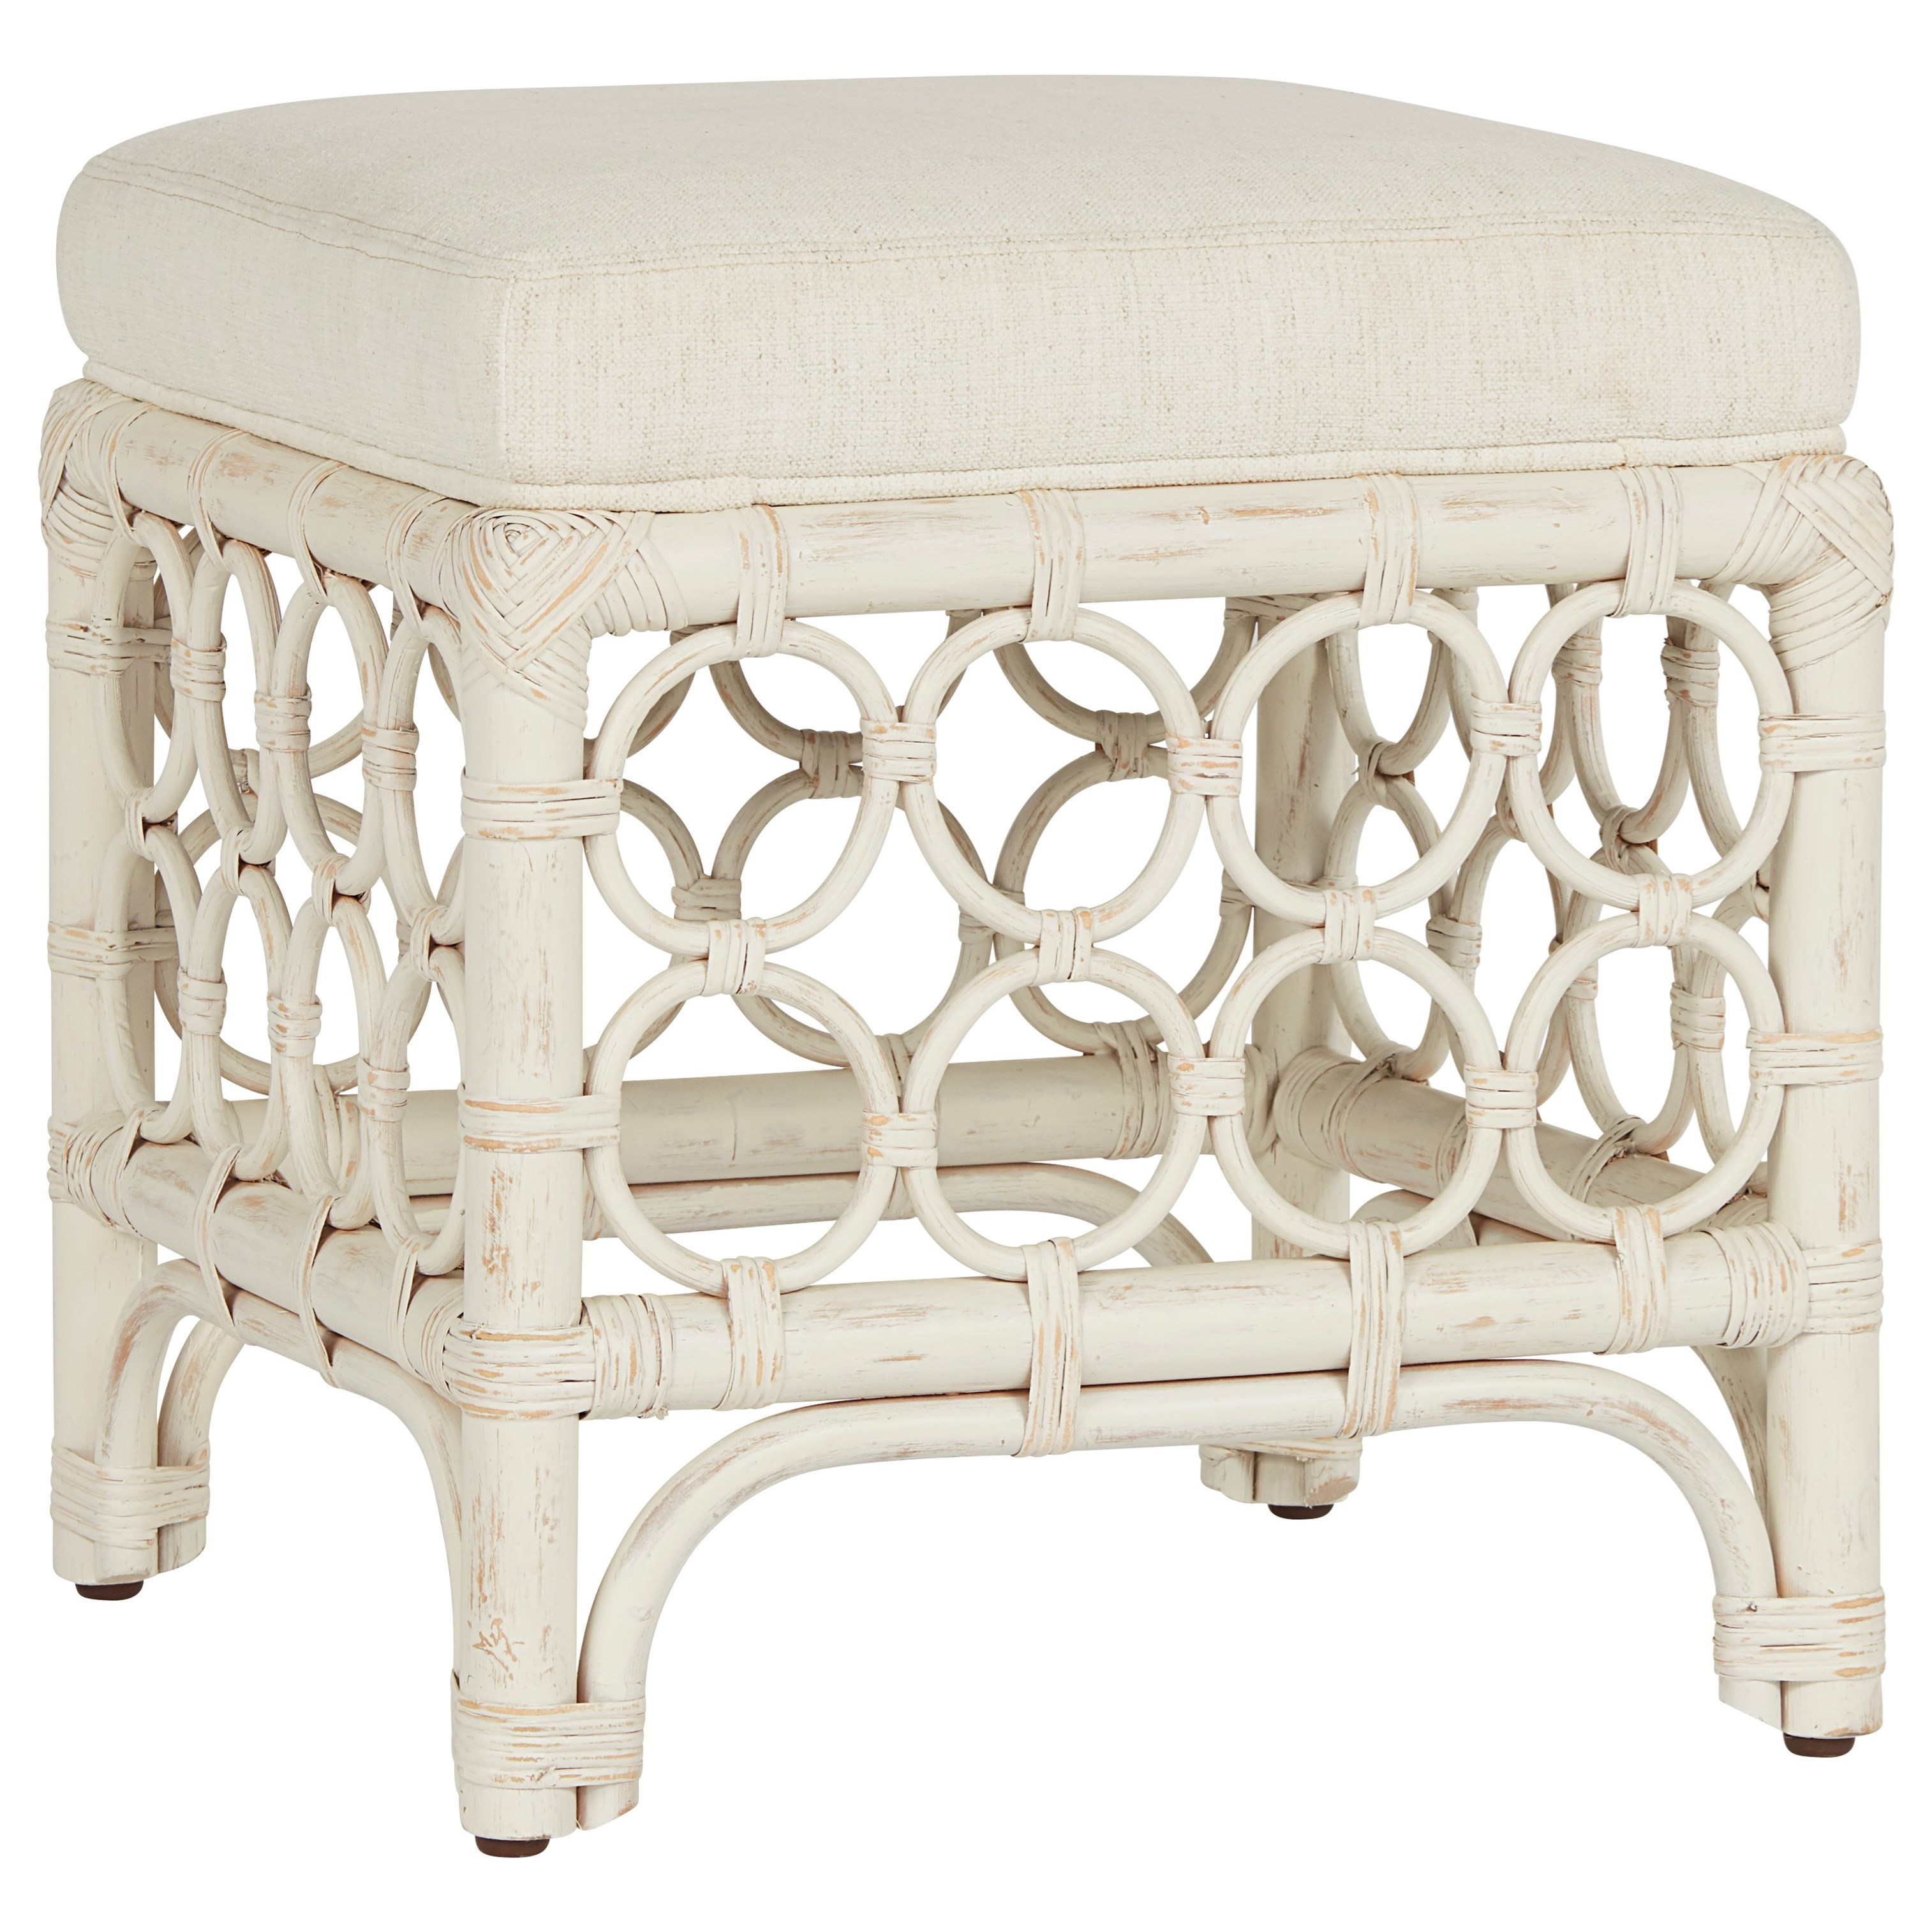 Coastal Living Home - Getaway Accent Bench by Universal at Baer's Furniture